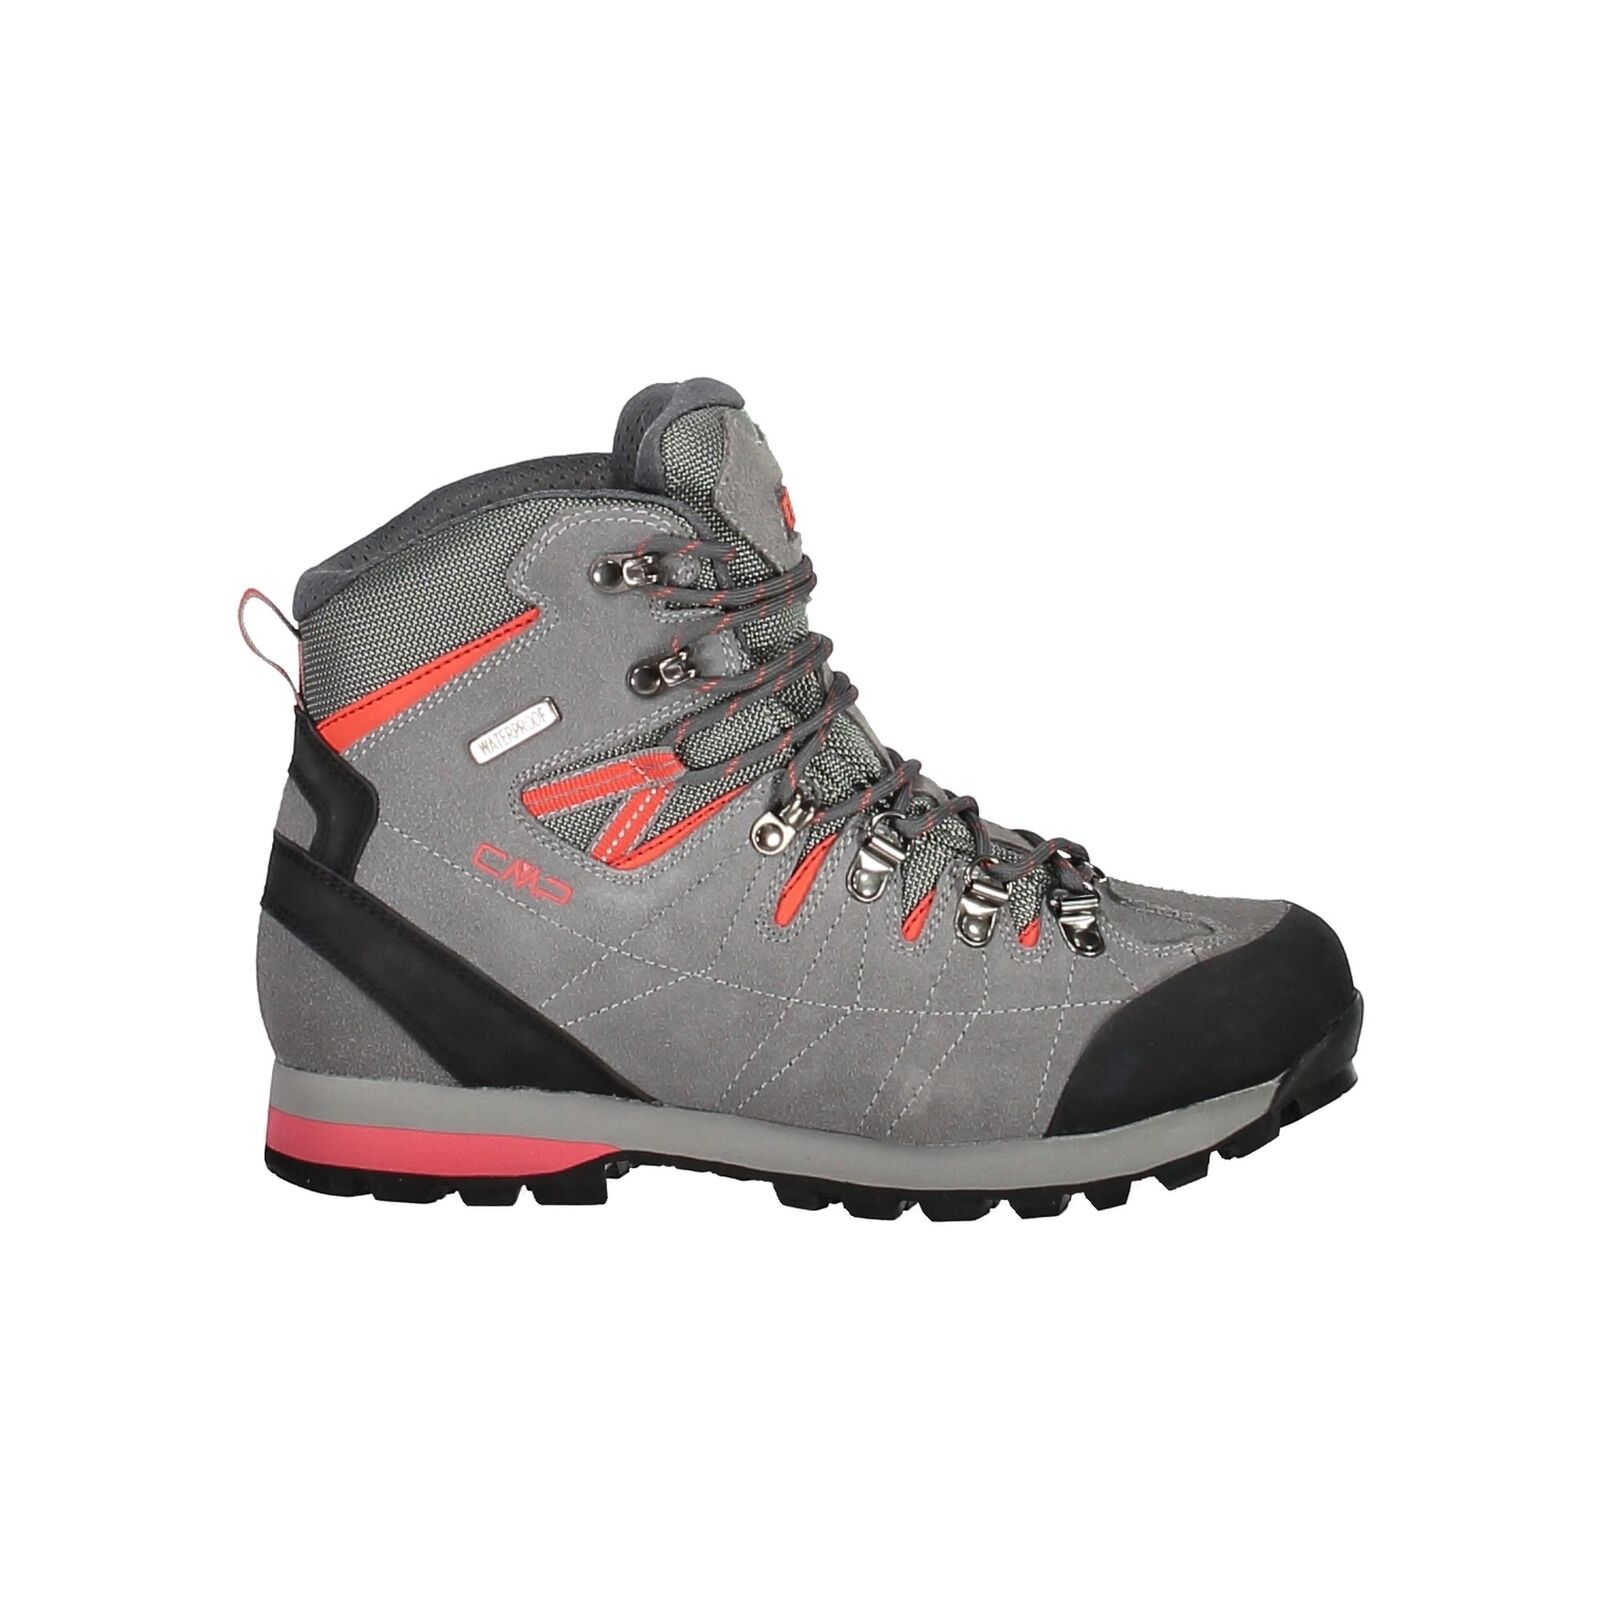 CMP  trekking shoes outdoor Arietis wmn wp grey  all goods are specials